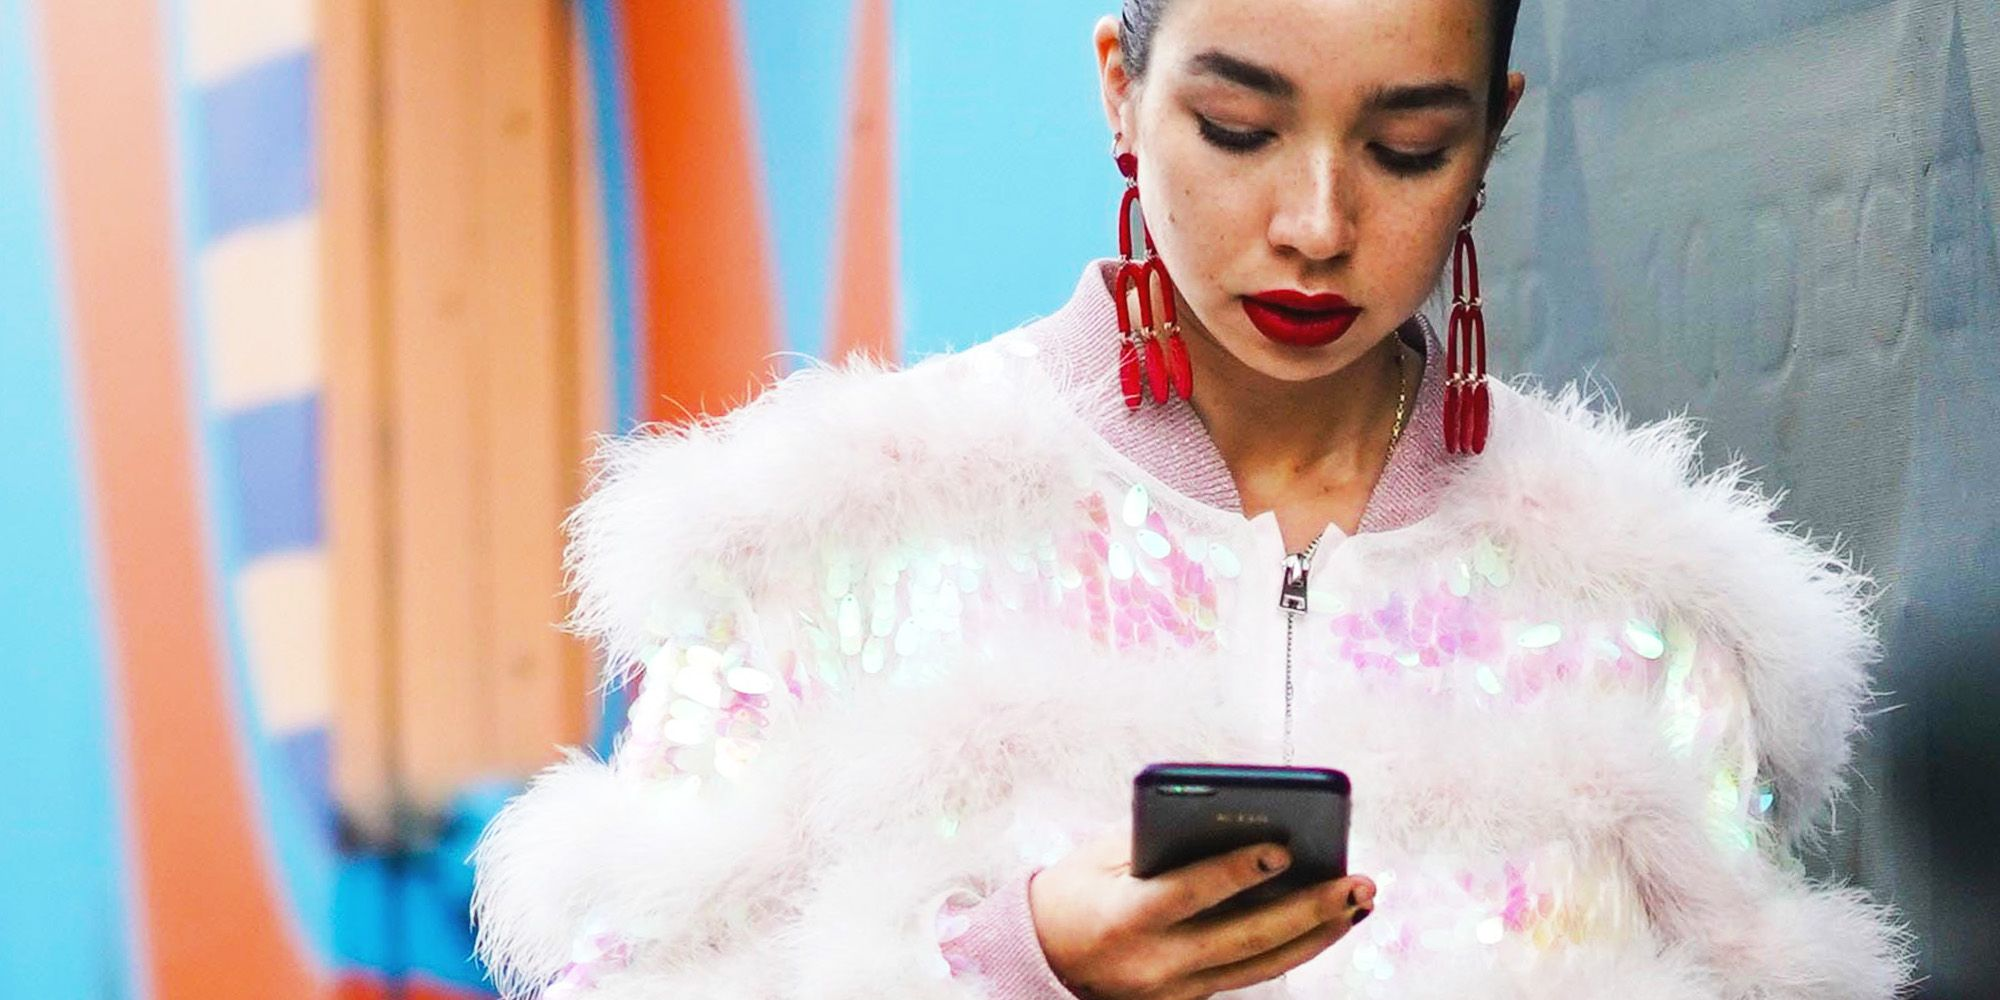 15 Beauty Apps To Try Beauty Fintess Hair And Makeup Apps For